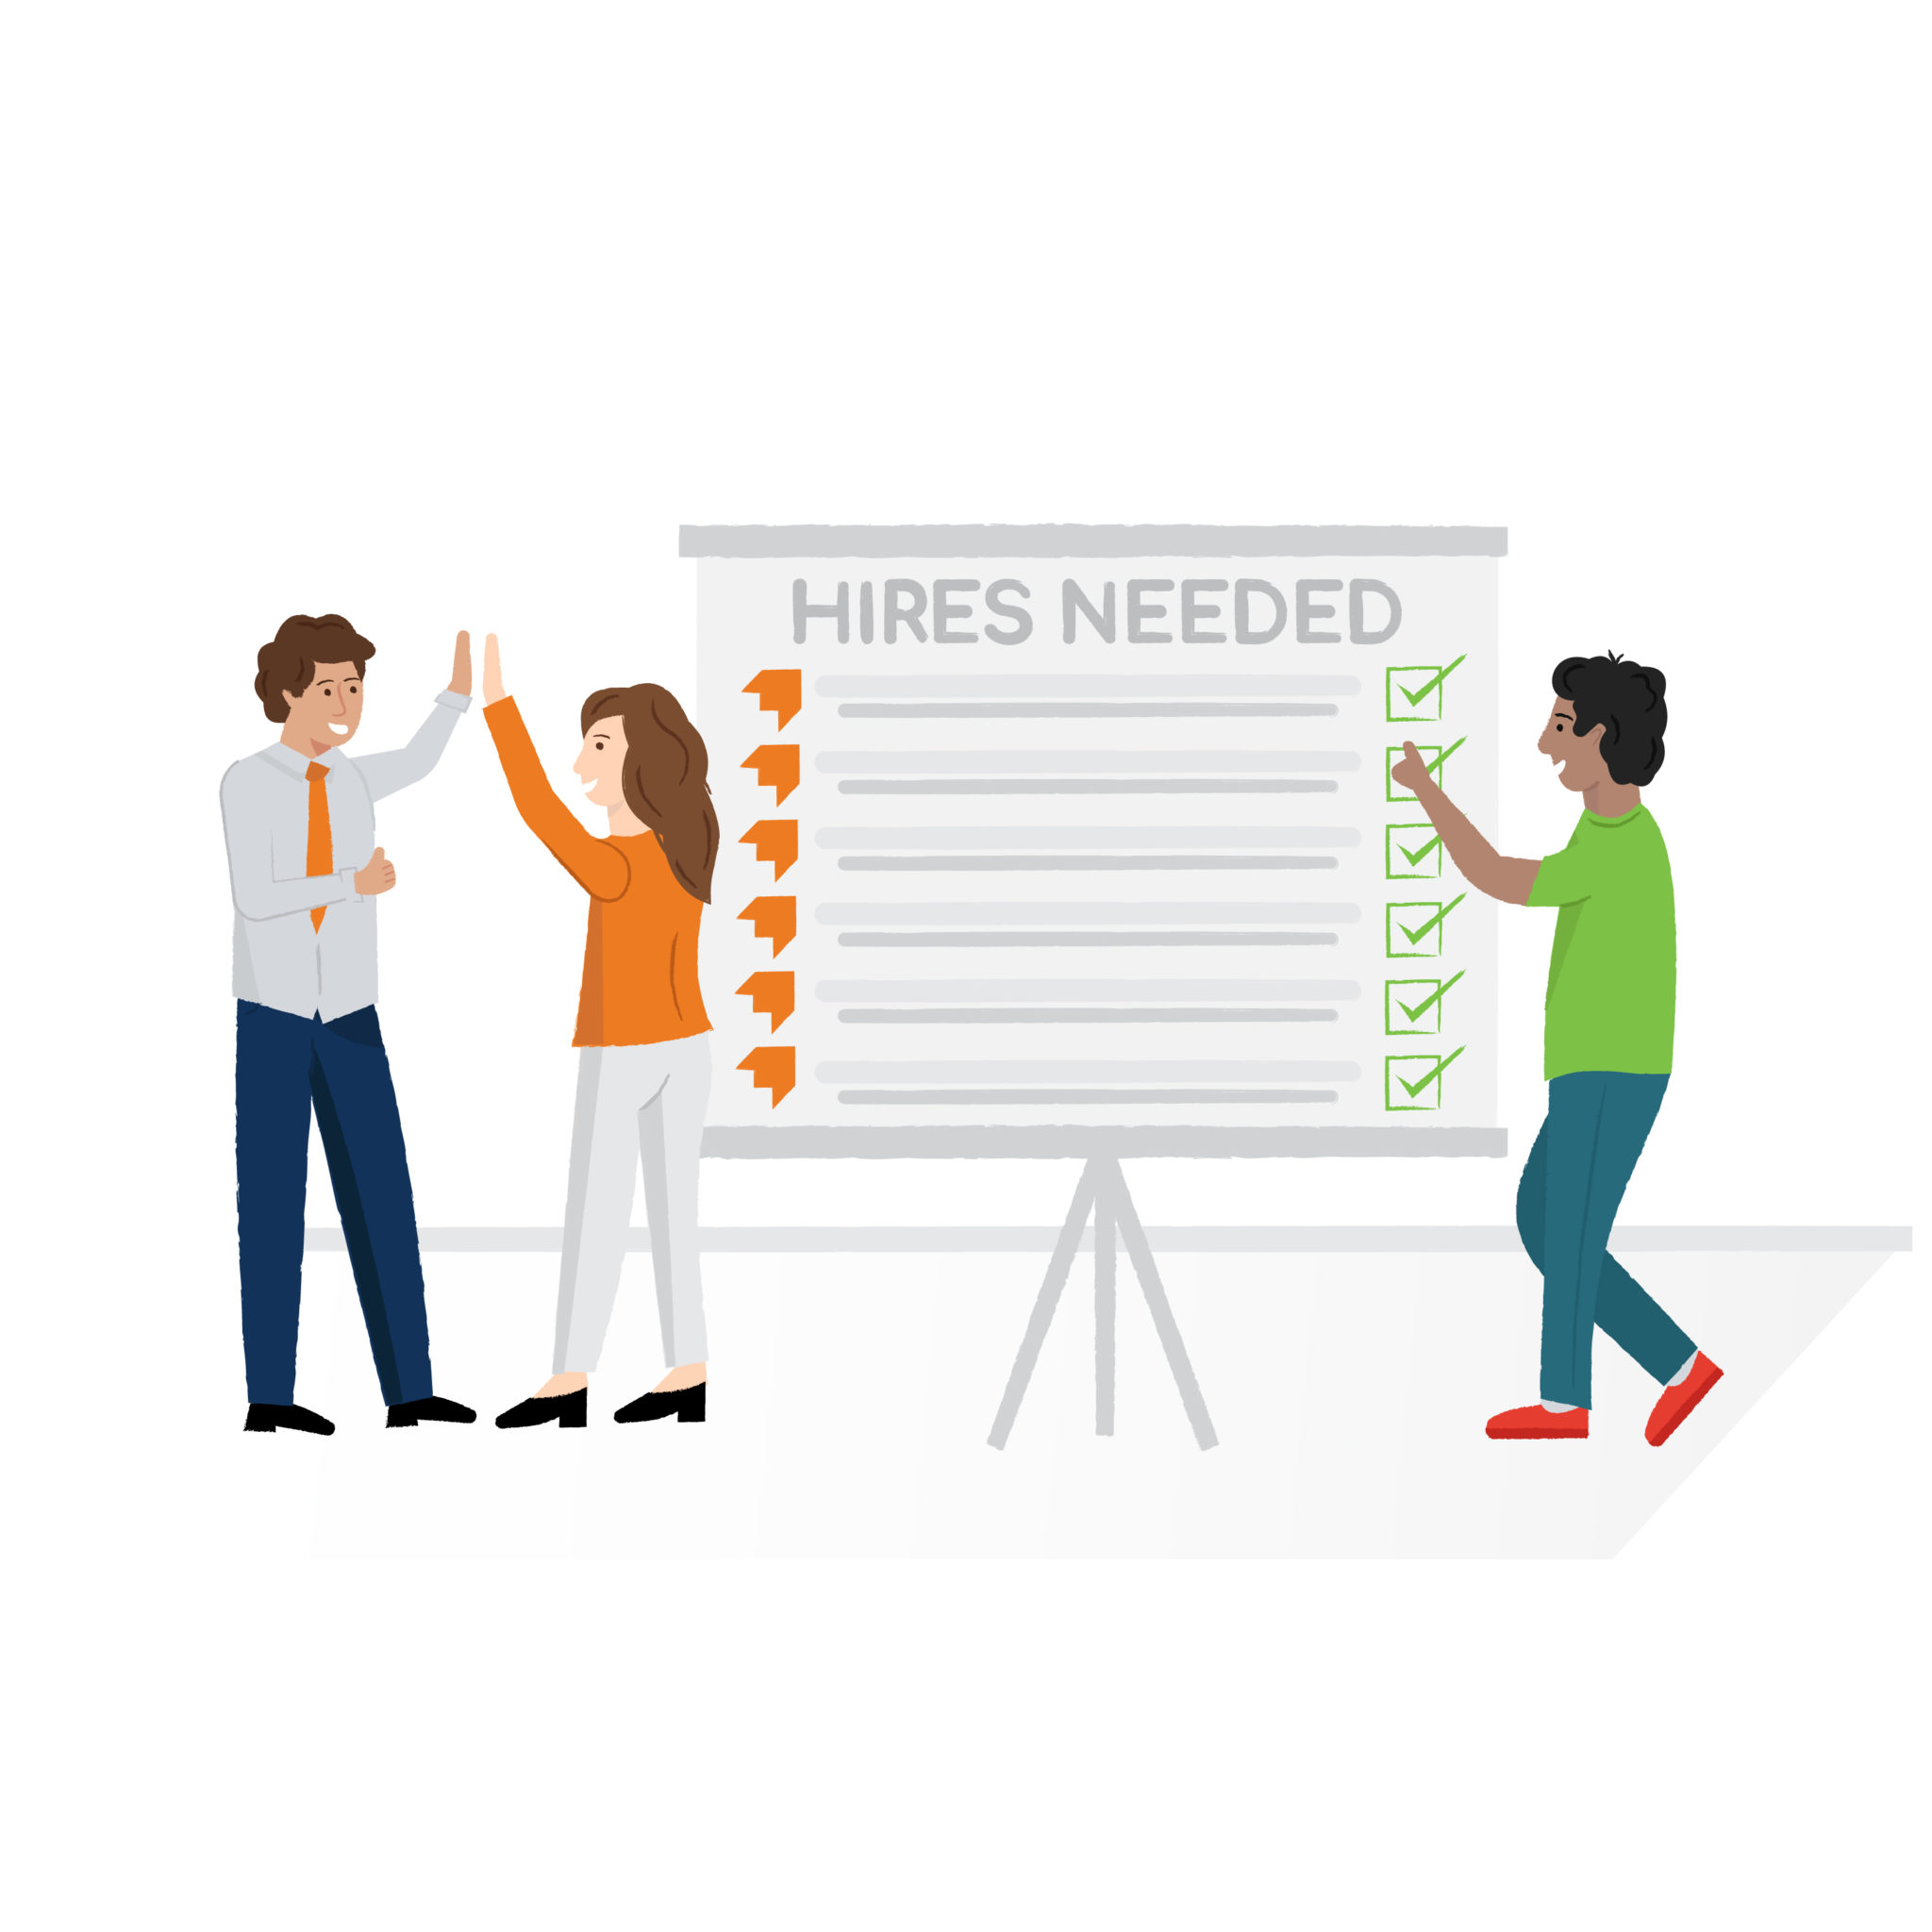 Hired By startups illustration and graphic design